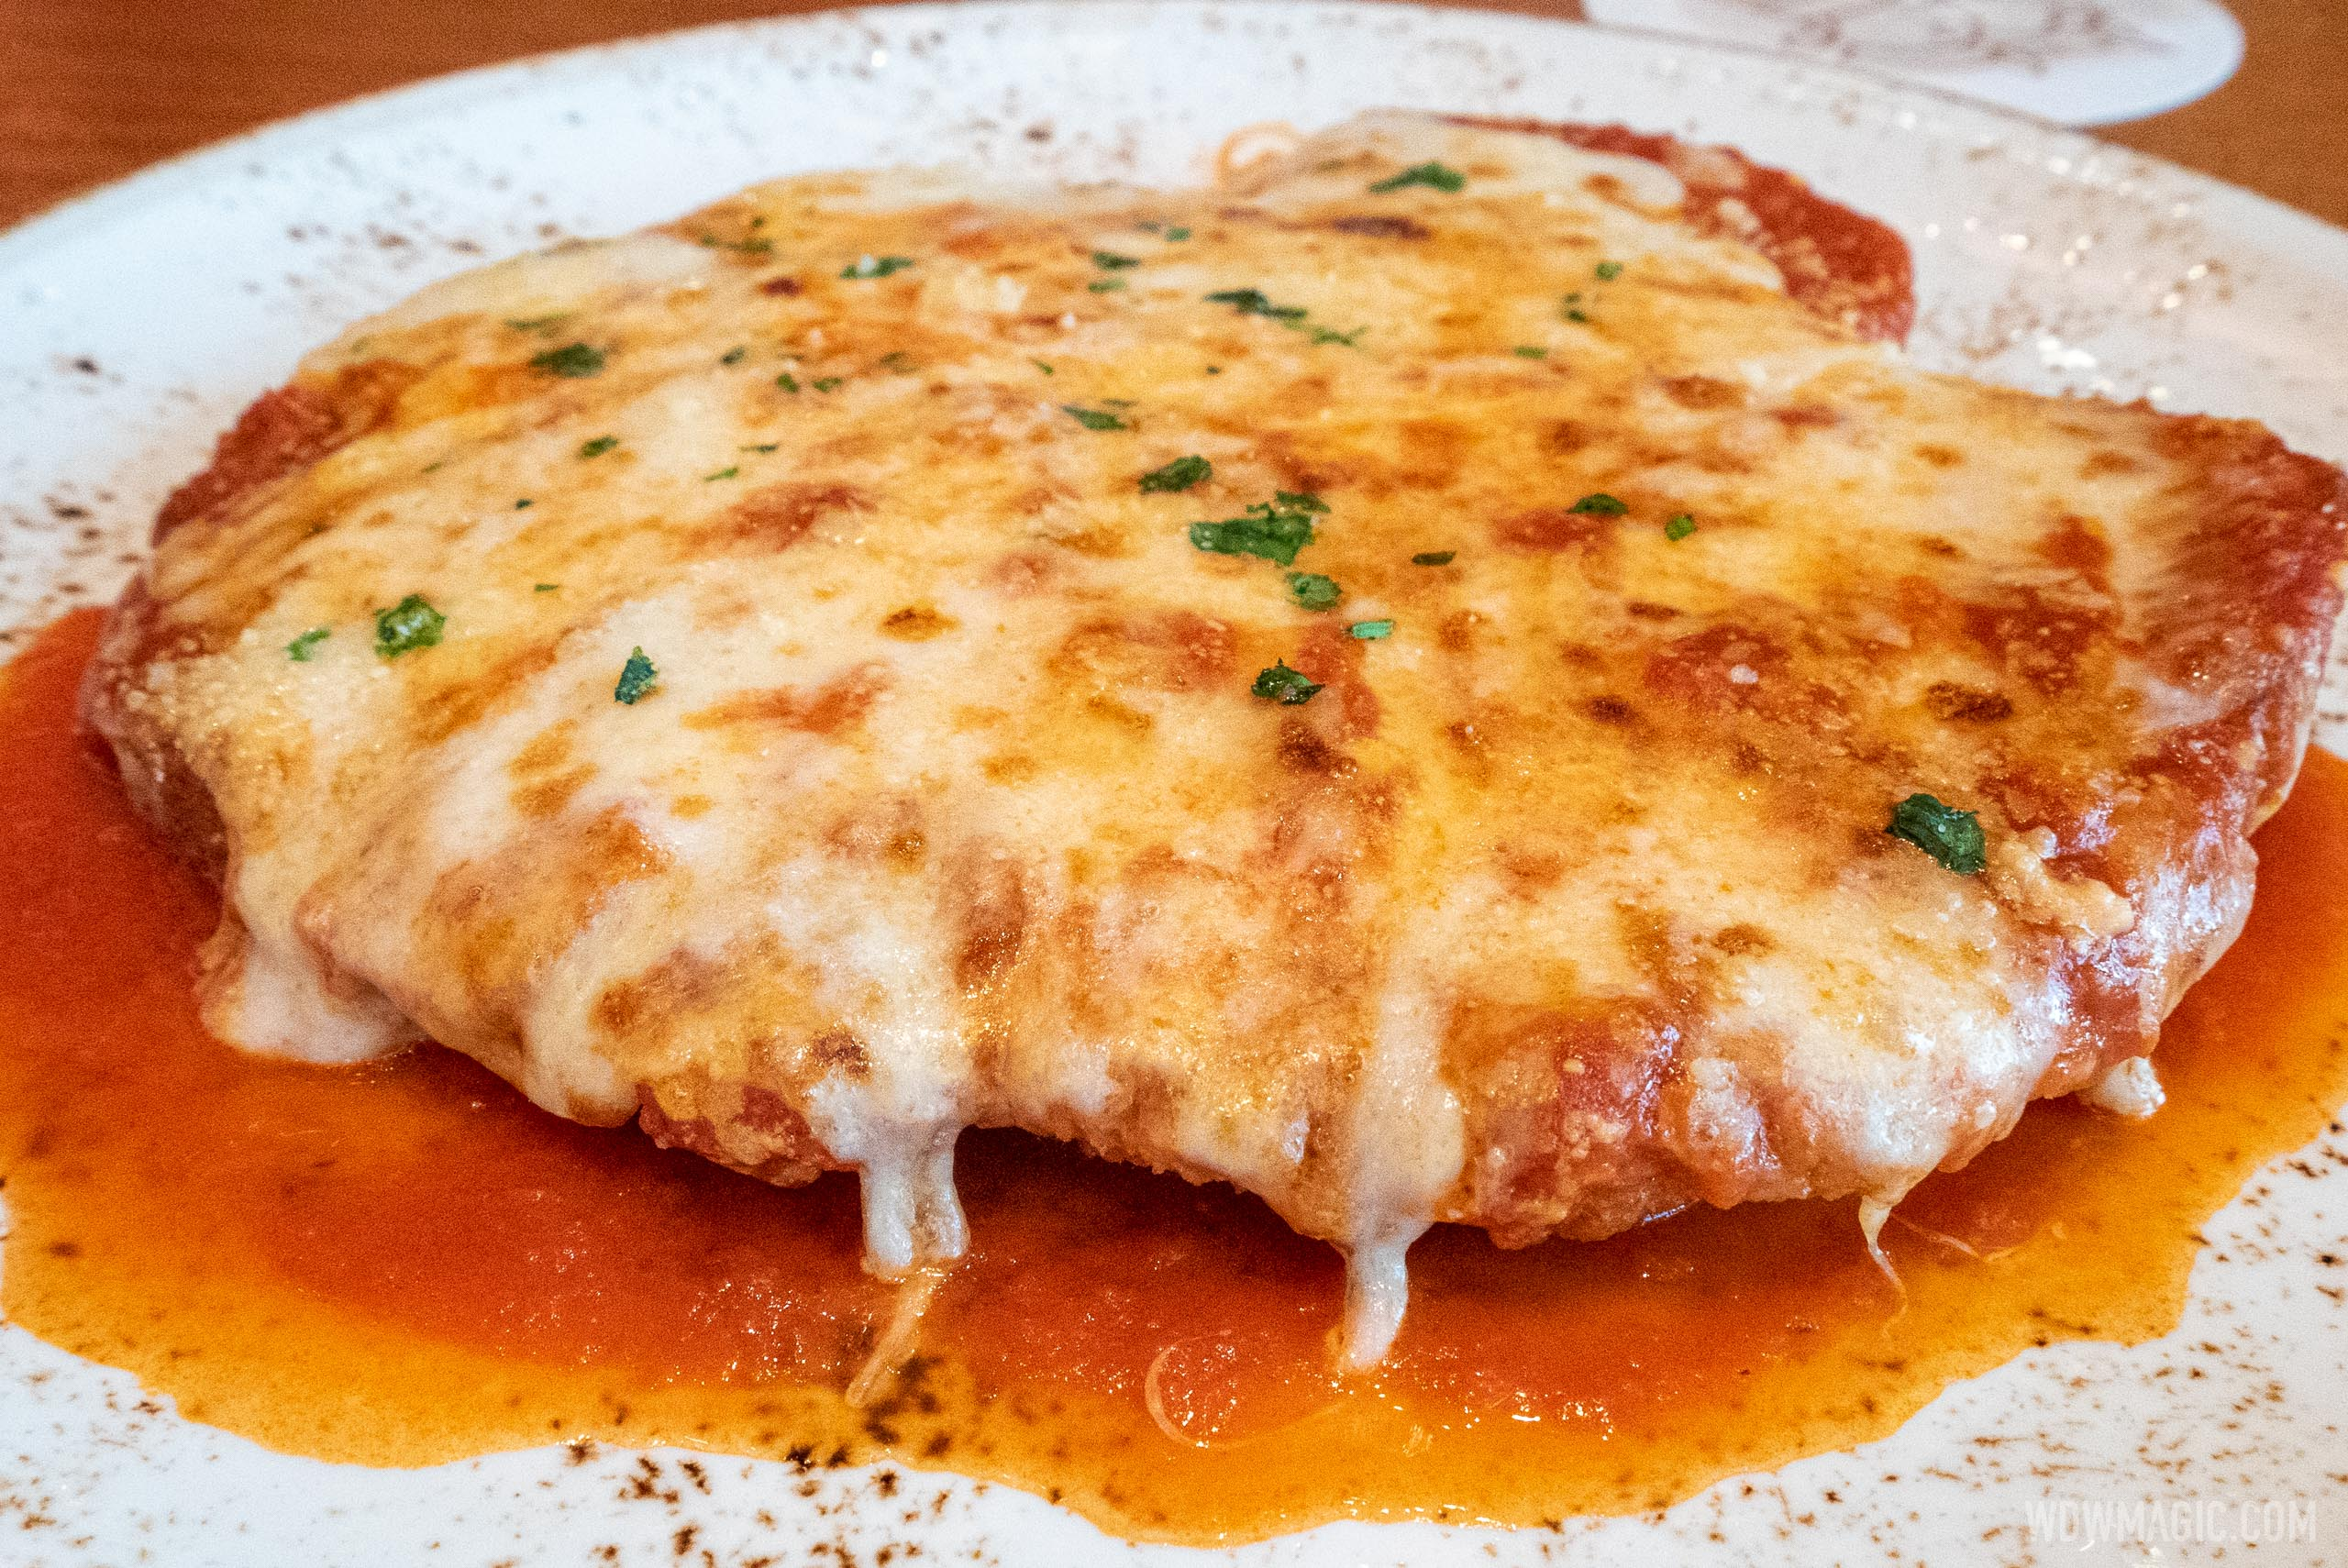 Maria and Enzo's is offering 20 percent off their excellent Pollo Alla Parmigiana